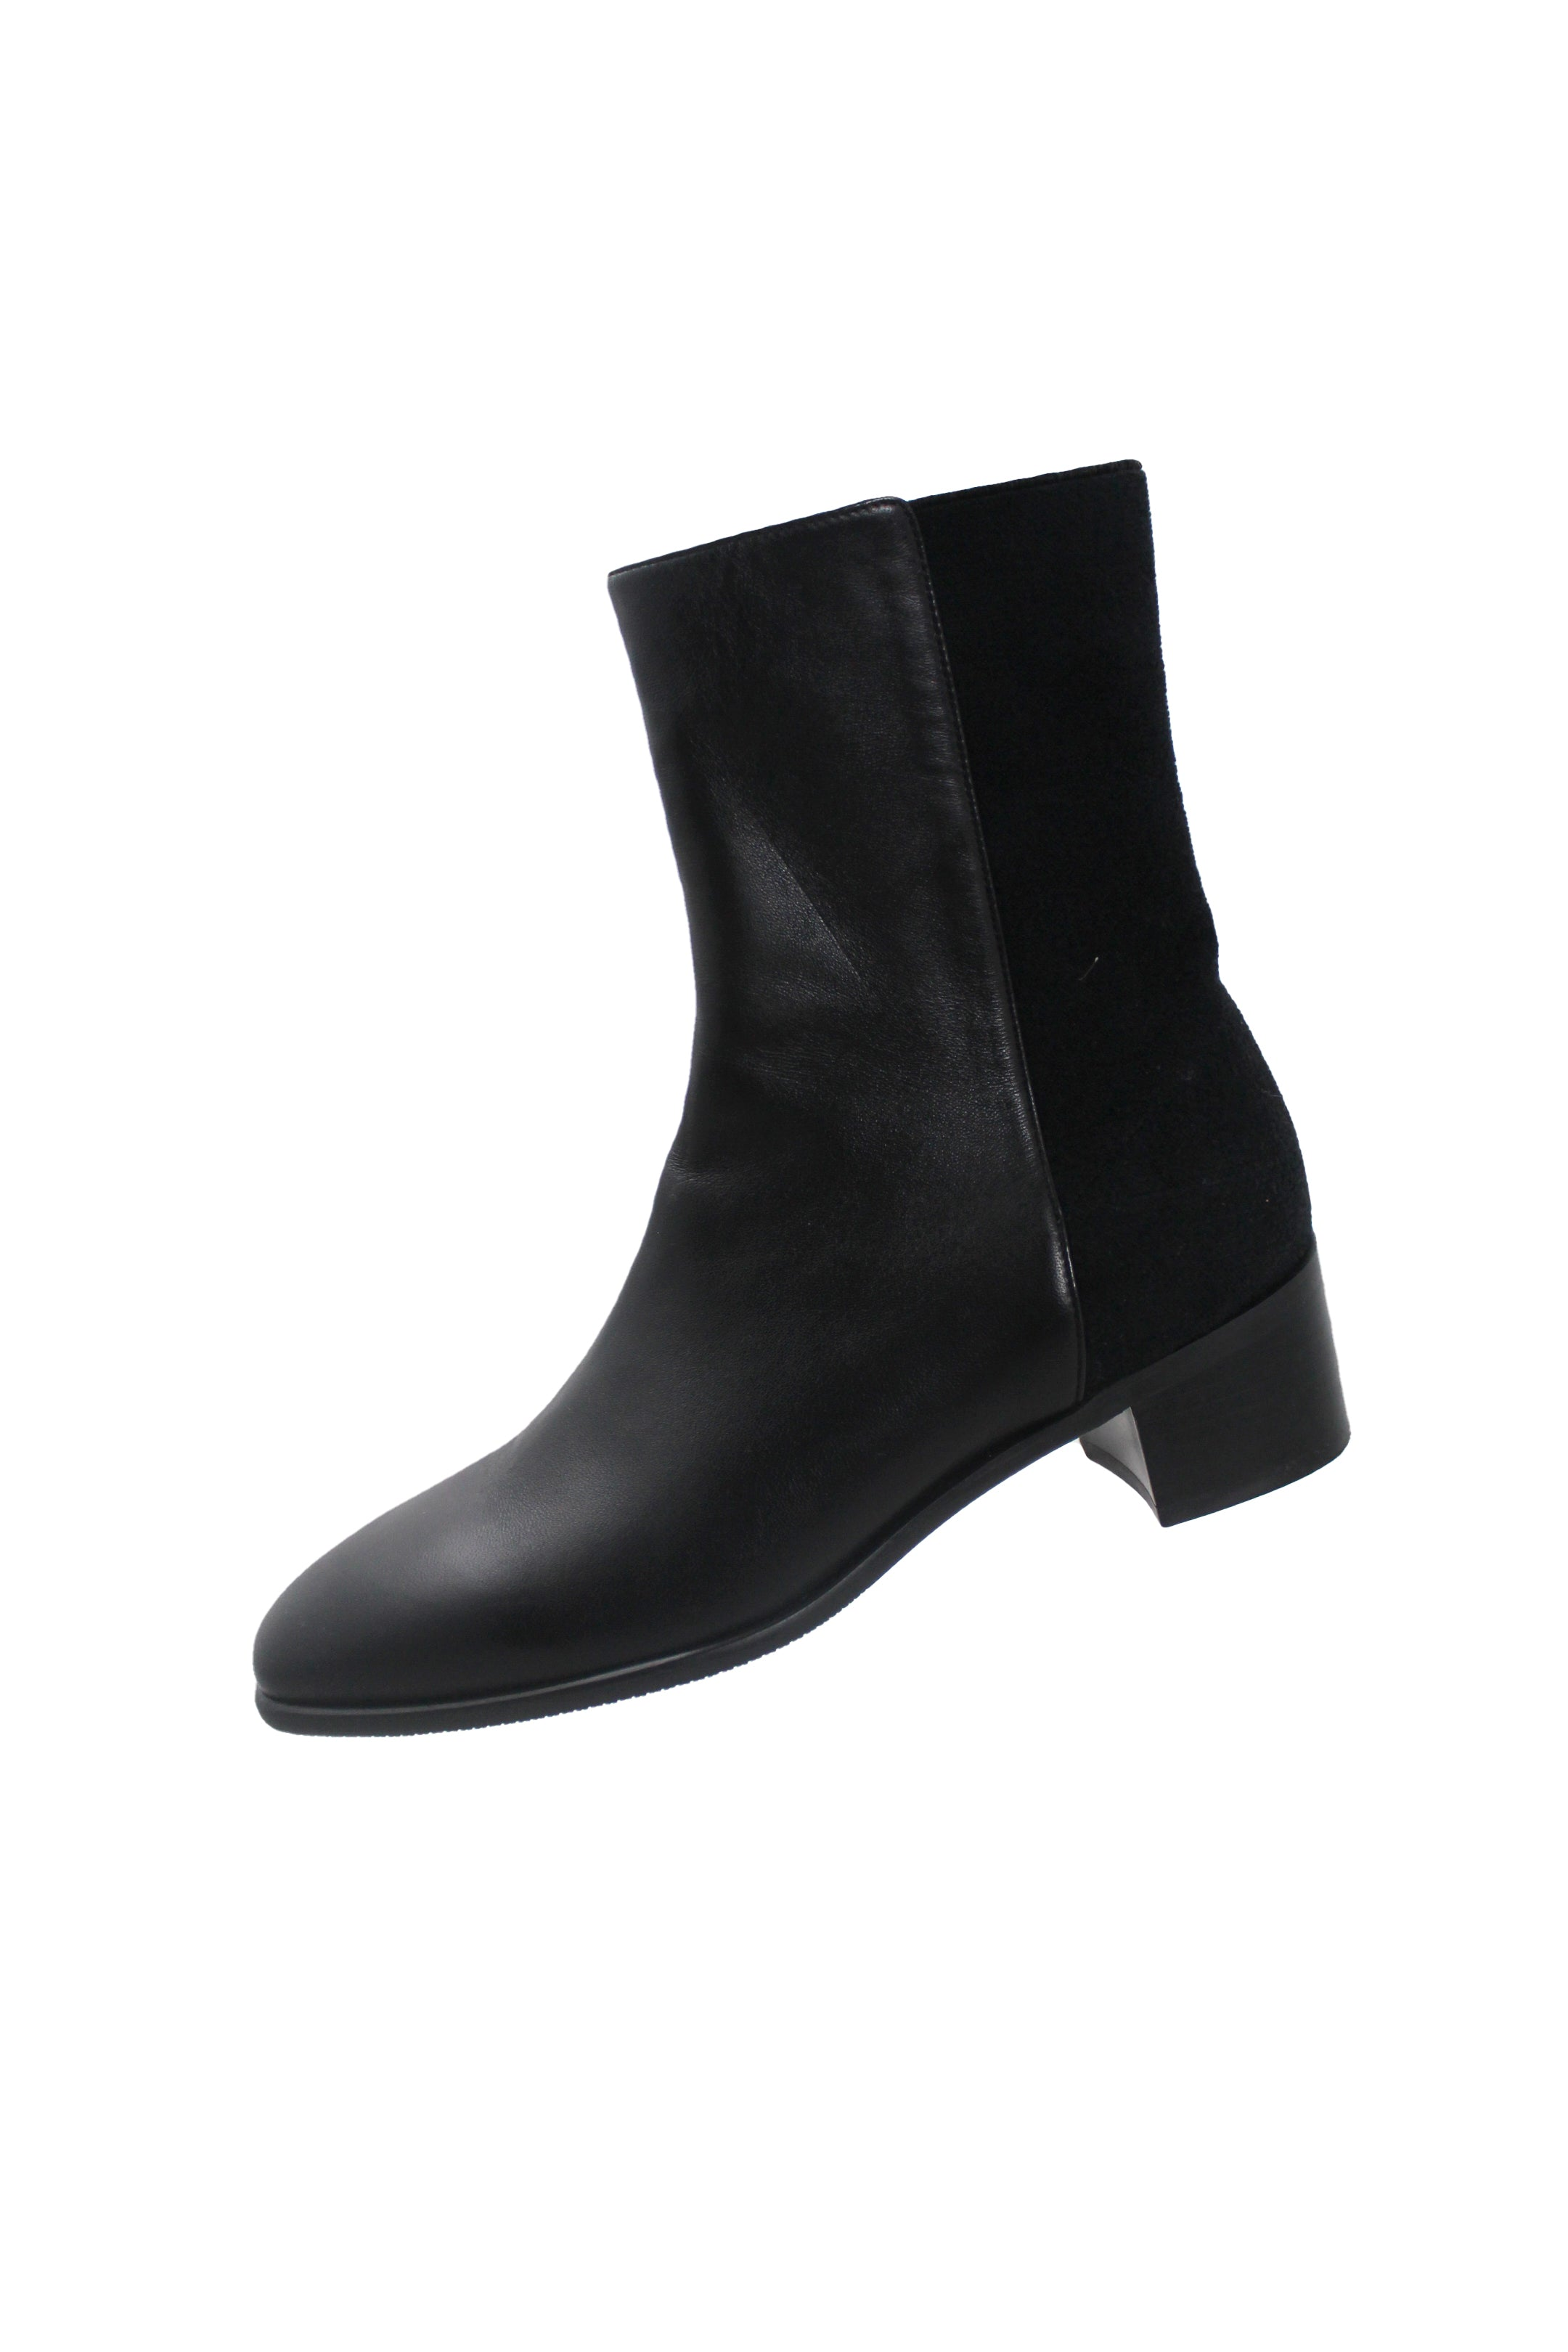 stuart weitzman black leather boots. features black leather exterior with tonal back panel with elastic stretch and block heel.